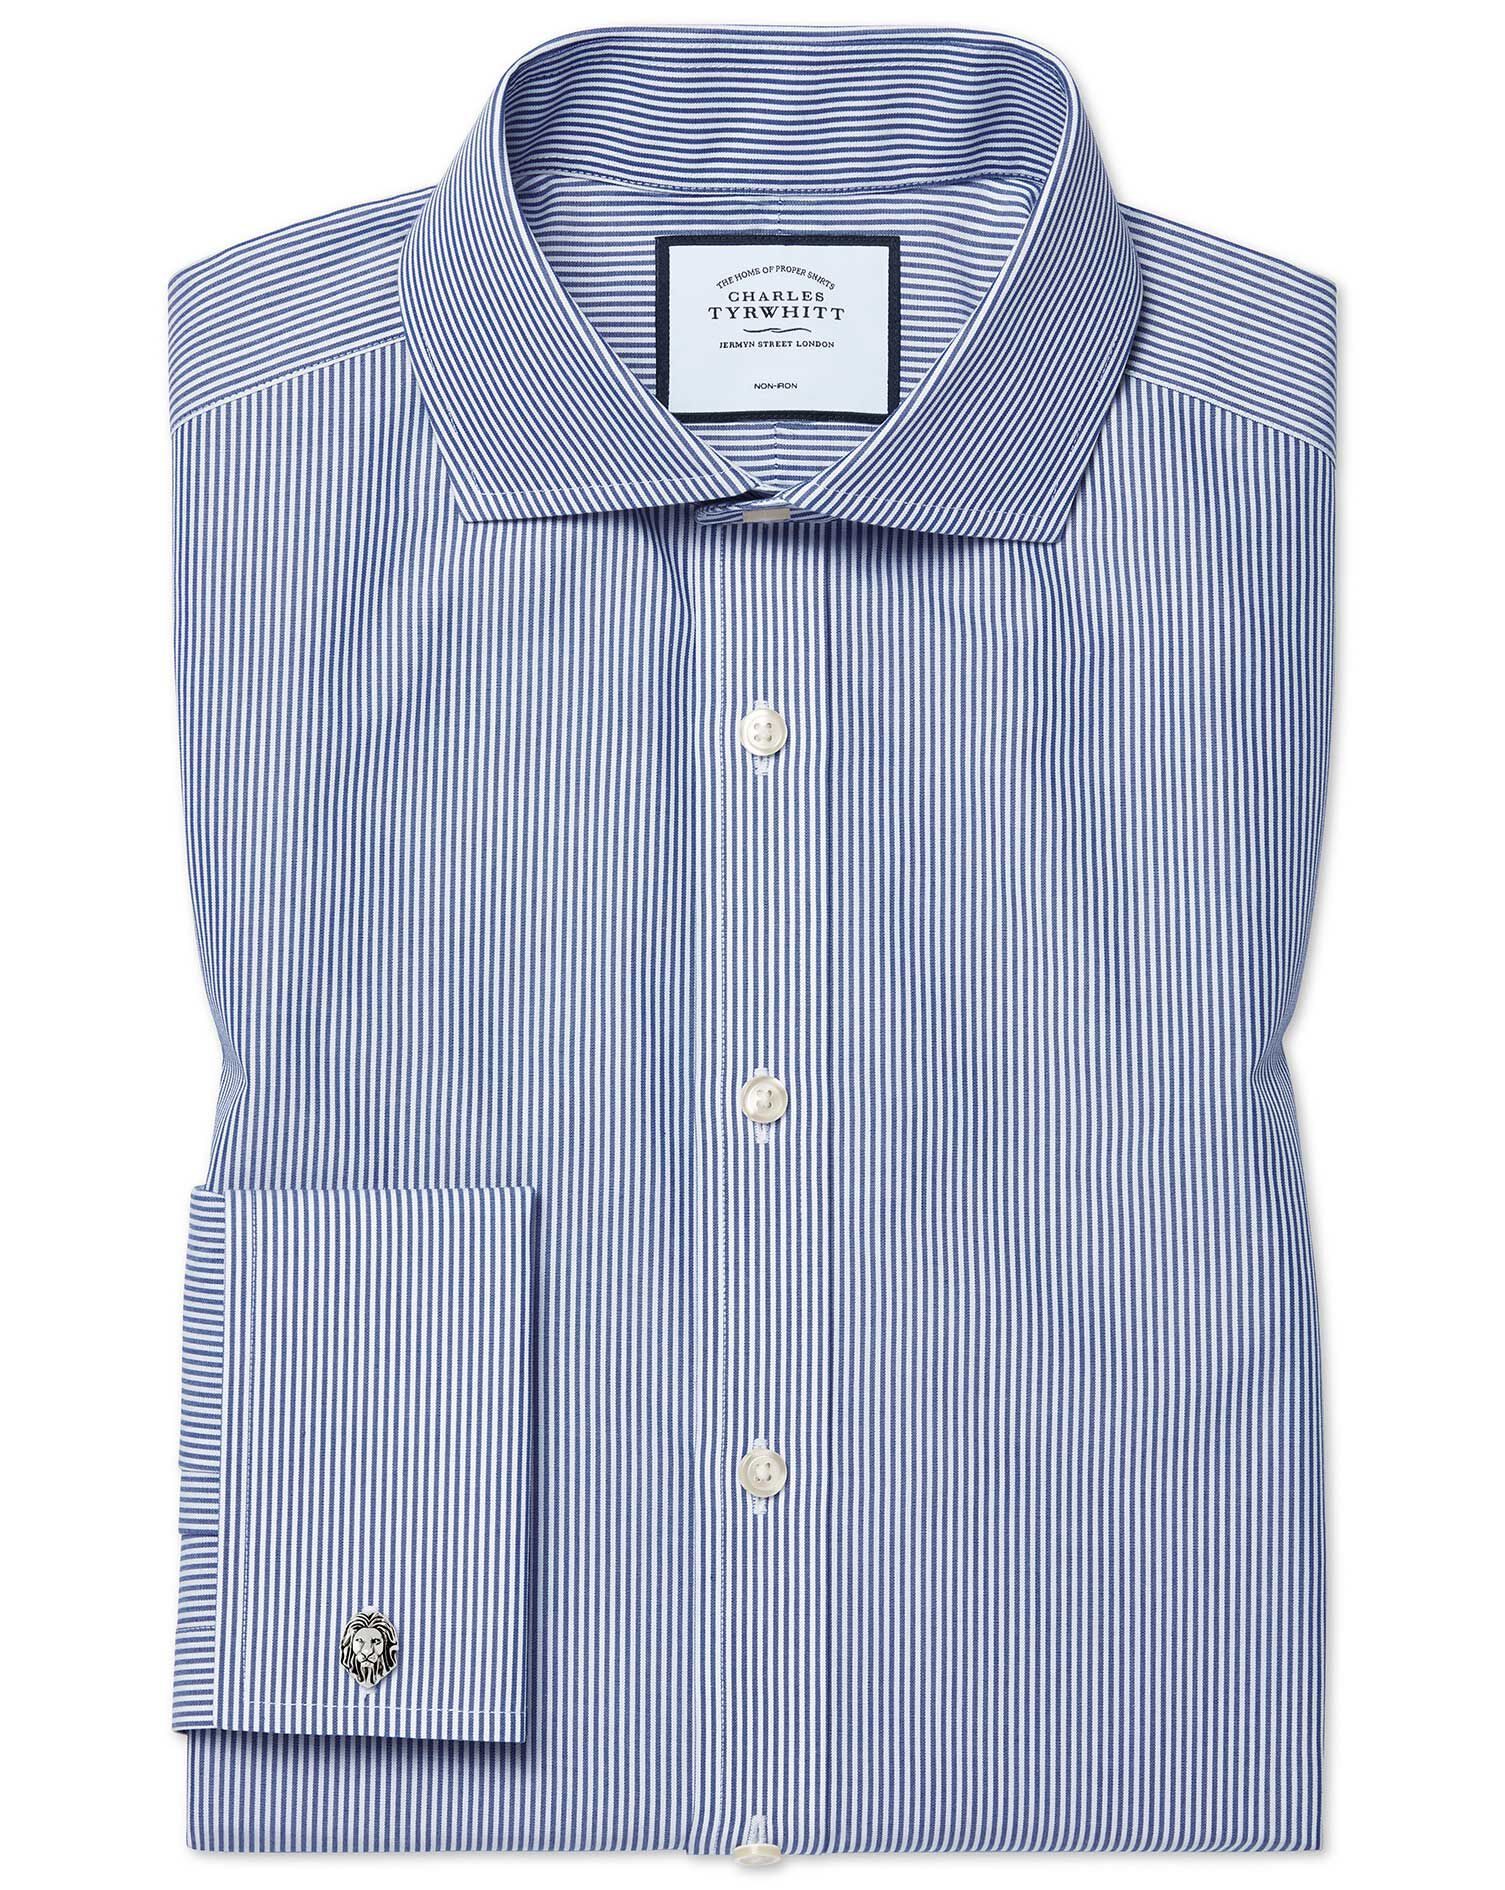 Extra Slim Fit Cutaway Non-Iron Bengal Stripe Navy Blue Cotton Formal Shirt Single Cuff Size 16/35 b